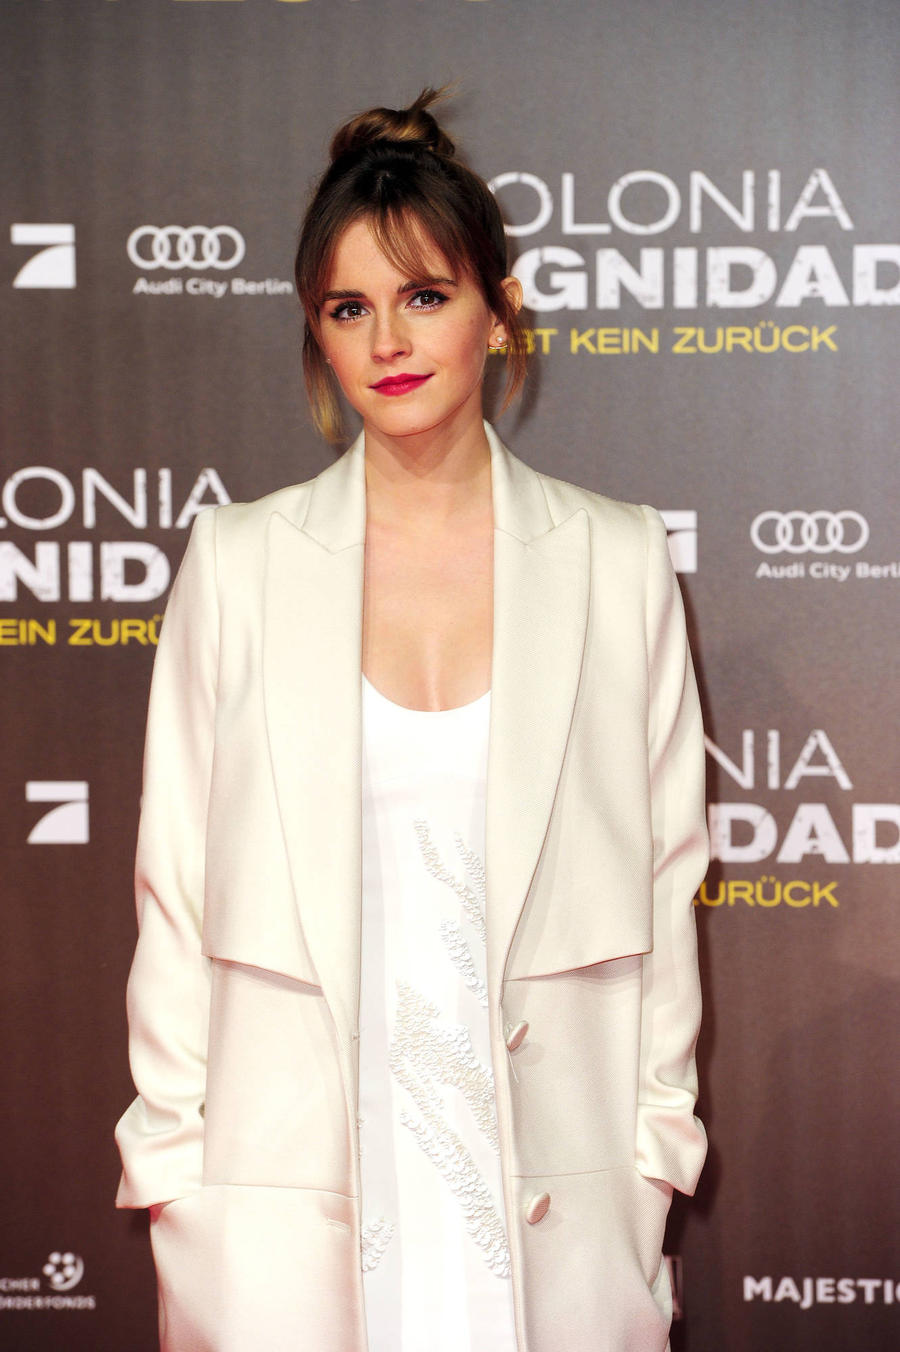 Emma Watson Debuts Short Film On Gender Inequality